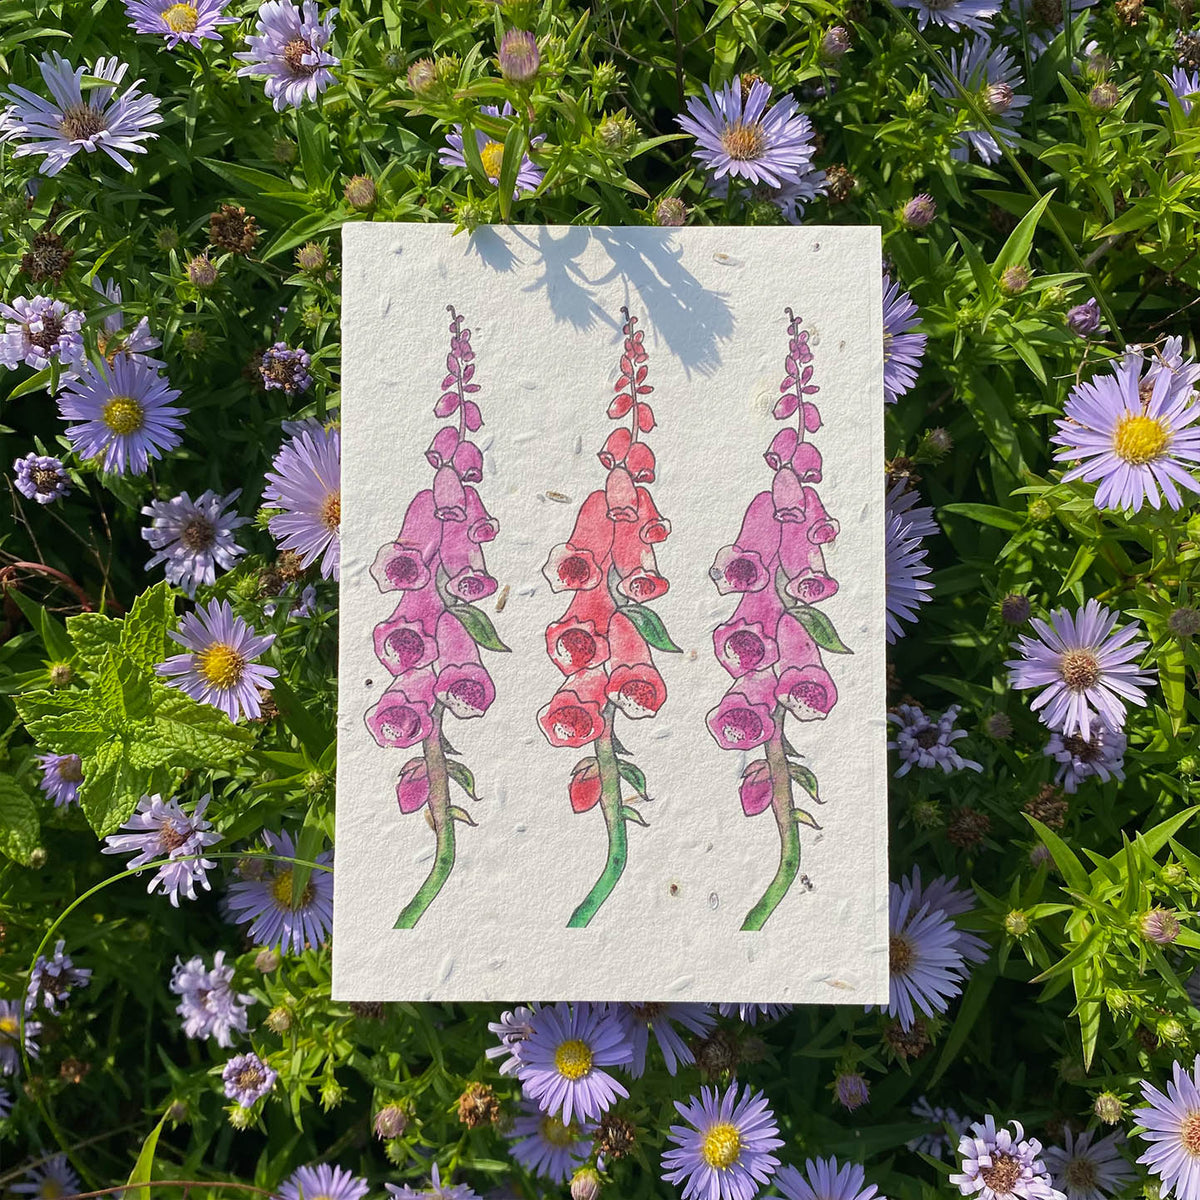 Foxglove Flowers - Plantable Wildflower Card | Greetings Card - The Naughty Shrew